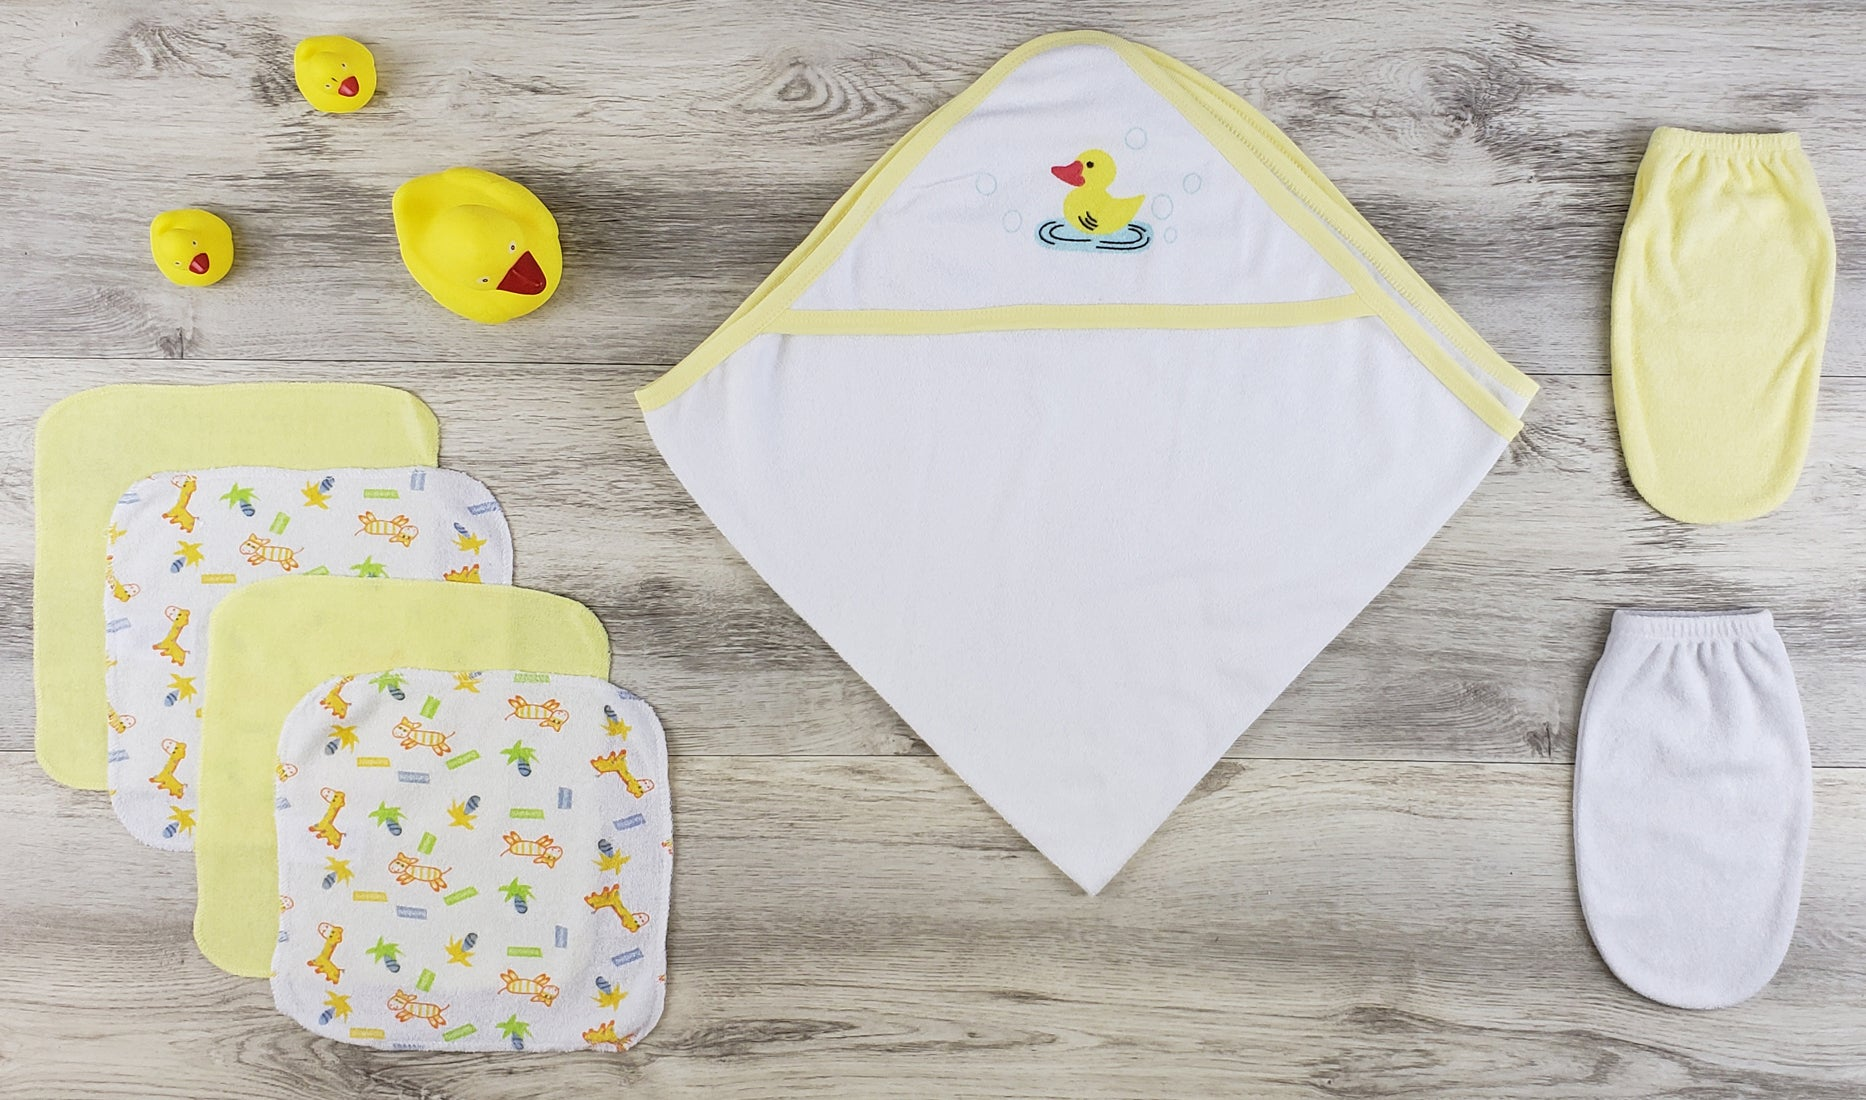 Bambini Hooded Towel, Wash Clothes, Bath Mittens and Robe